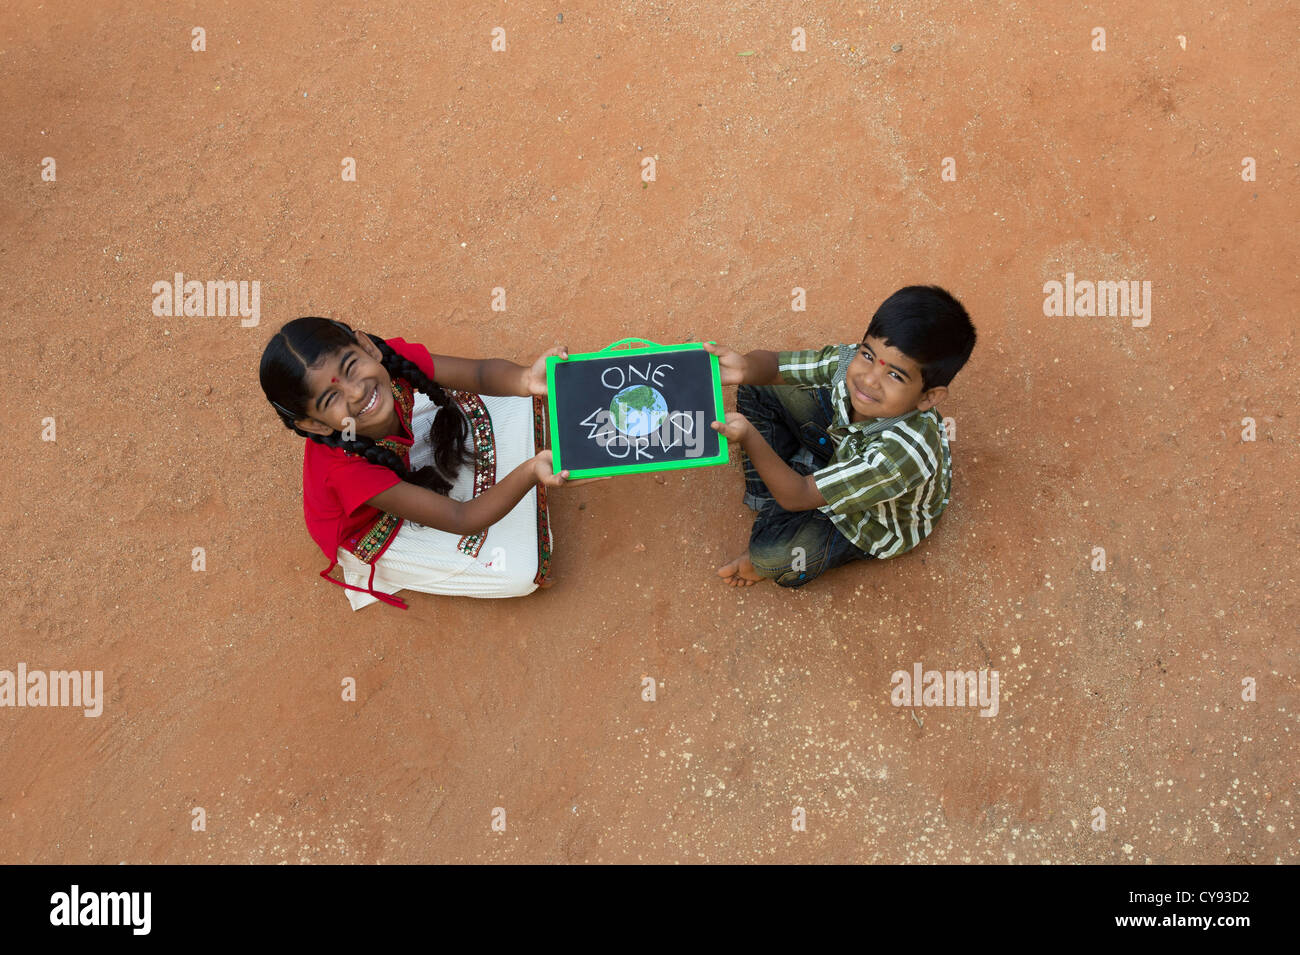 Indian village girl and boy with ONE WORLD written on a chalkboard in a rural indian village. Andhra Pradesh, India - Stock Image